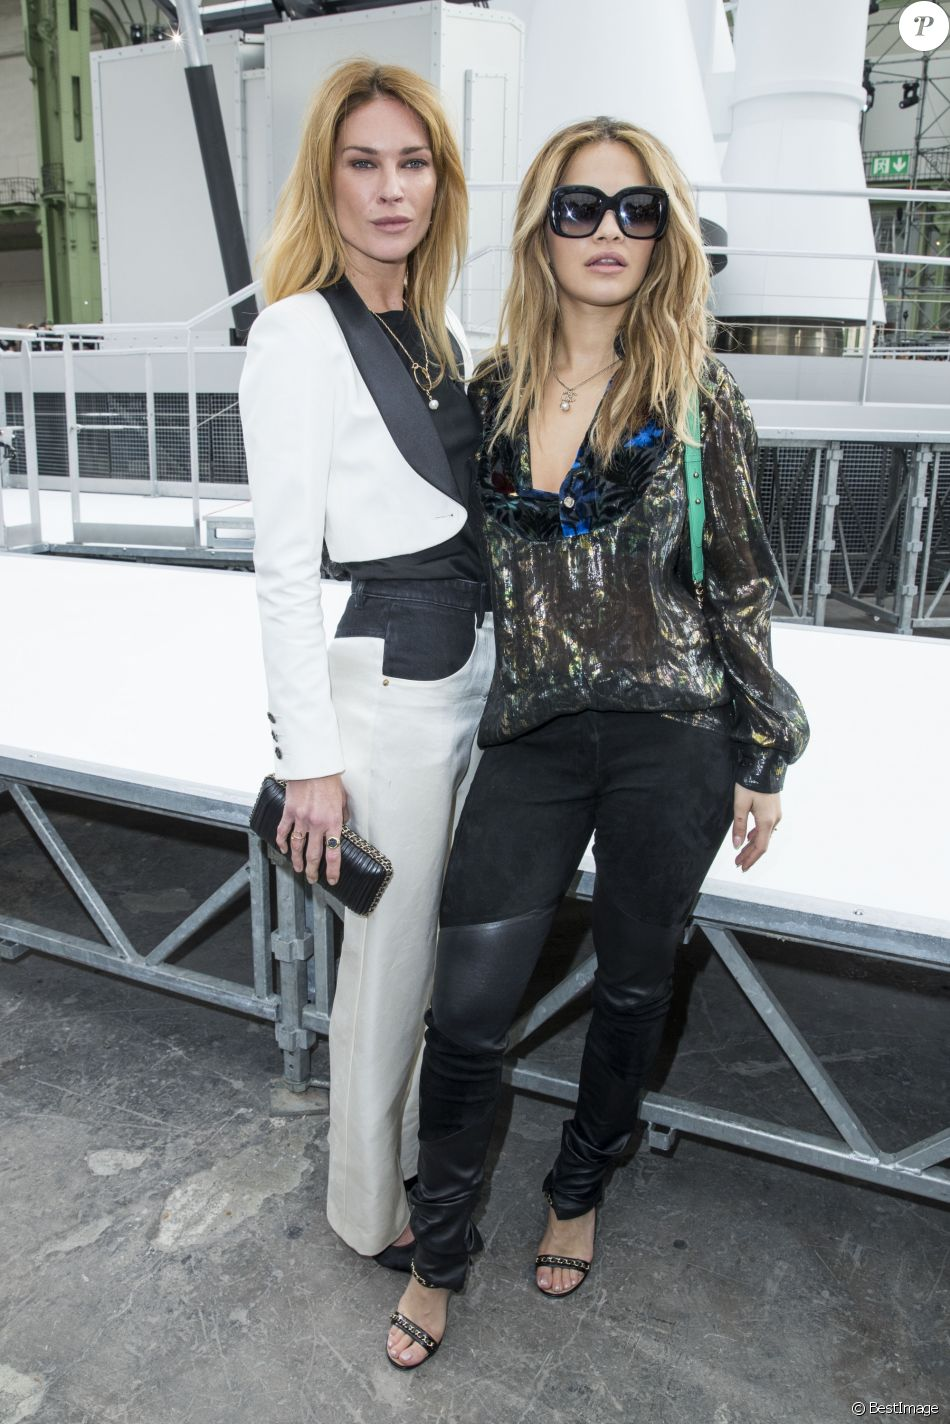 Erin wasson et rita ora d fil de mode chanel collection pr t porter automne hiver 2017 2018 Fashion style and mode facebook